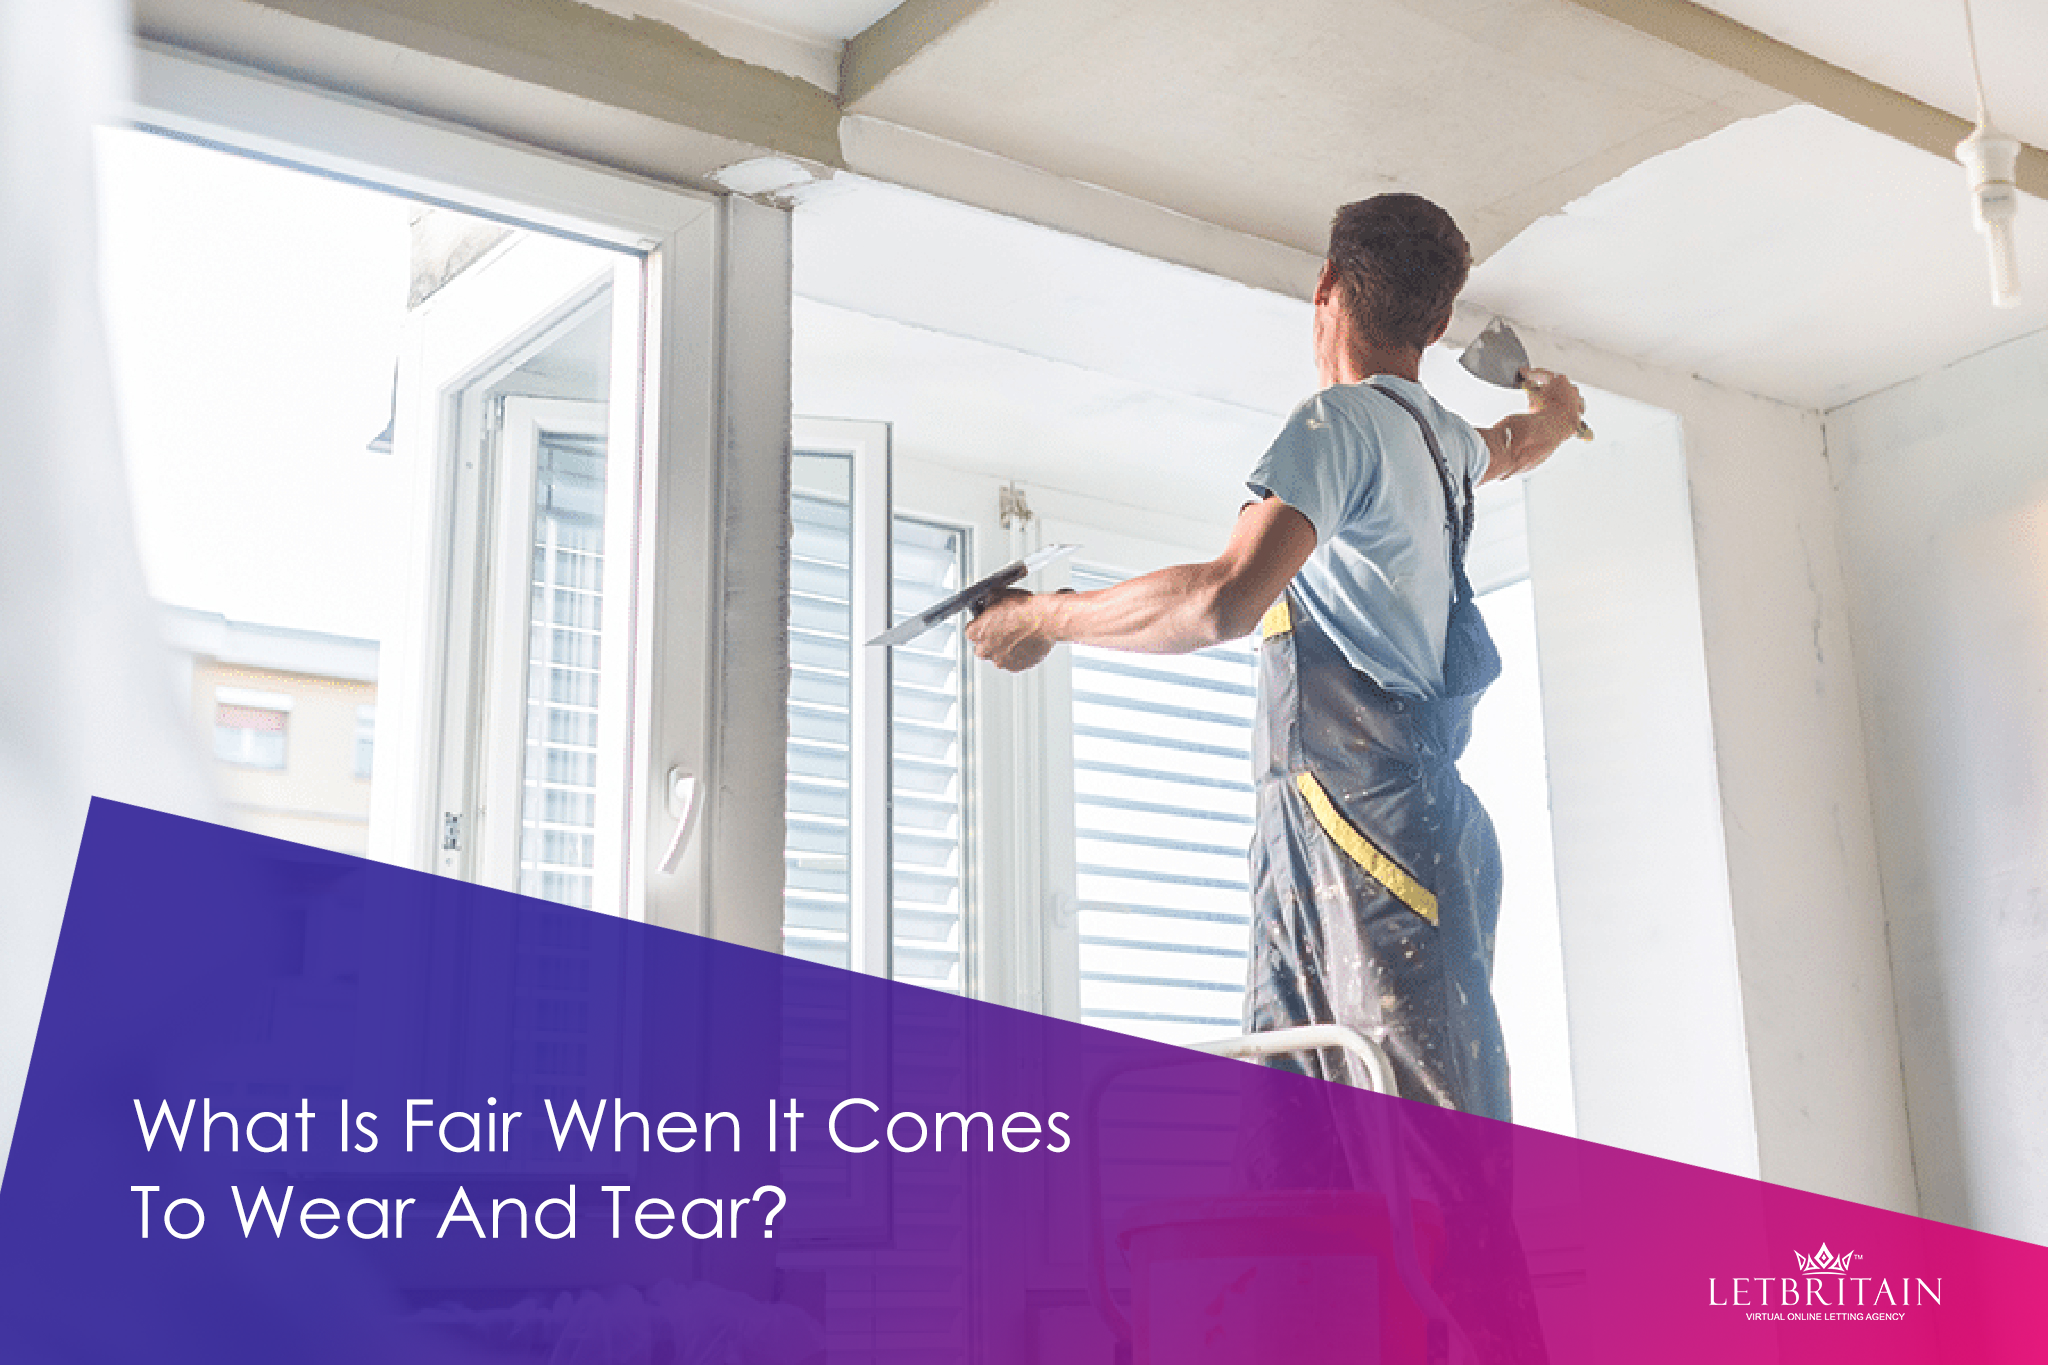 What is fair when it comes to wear and tear?